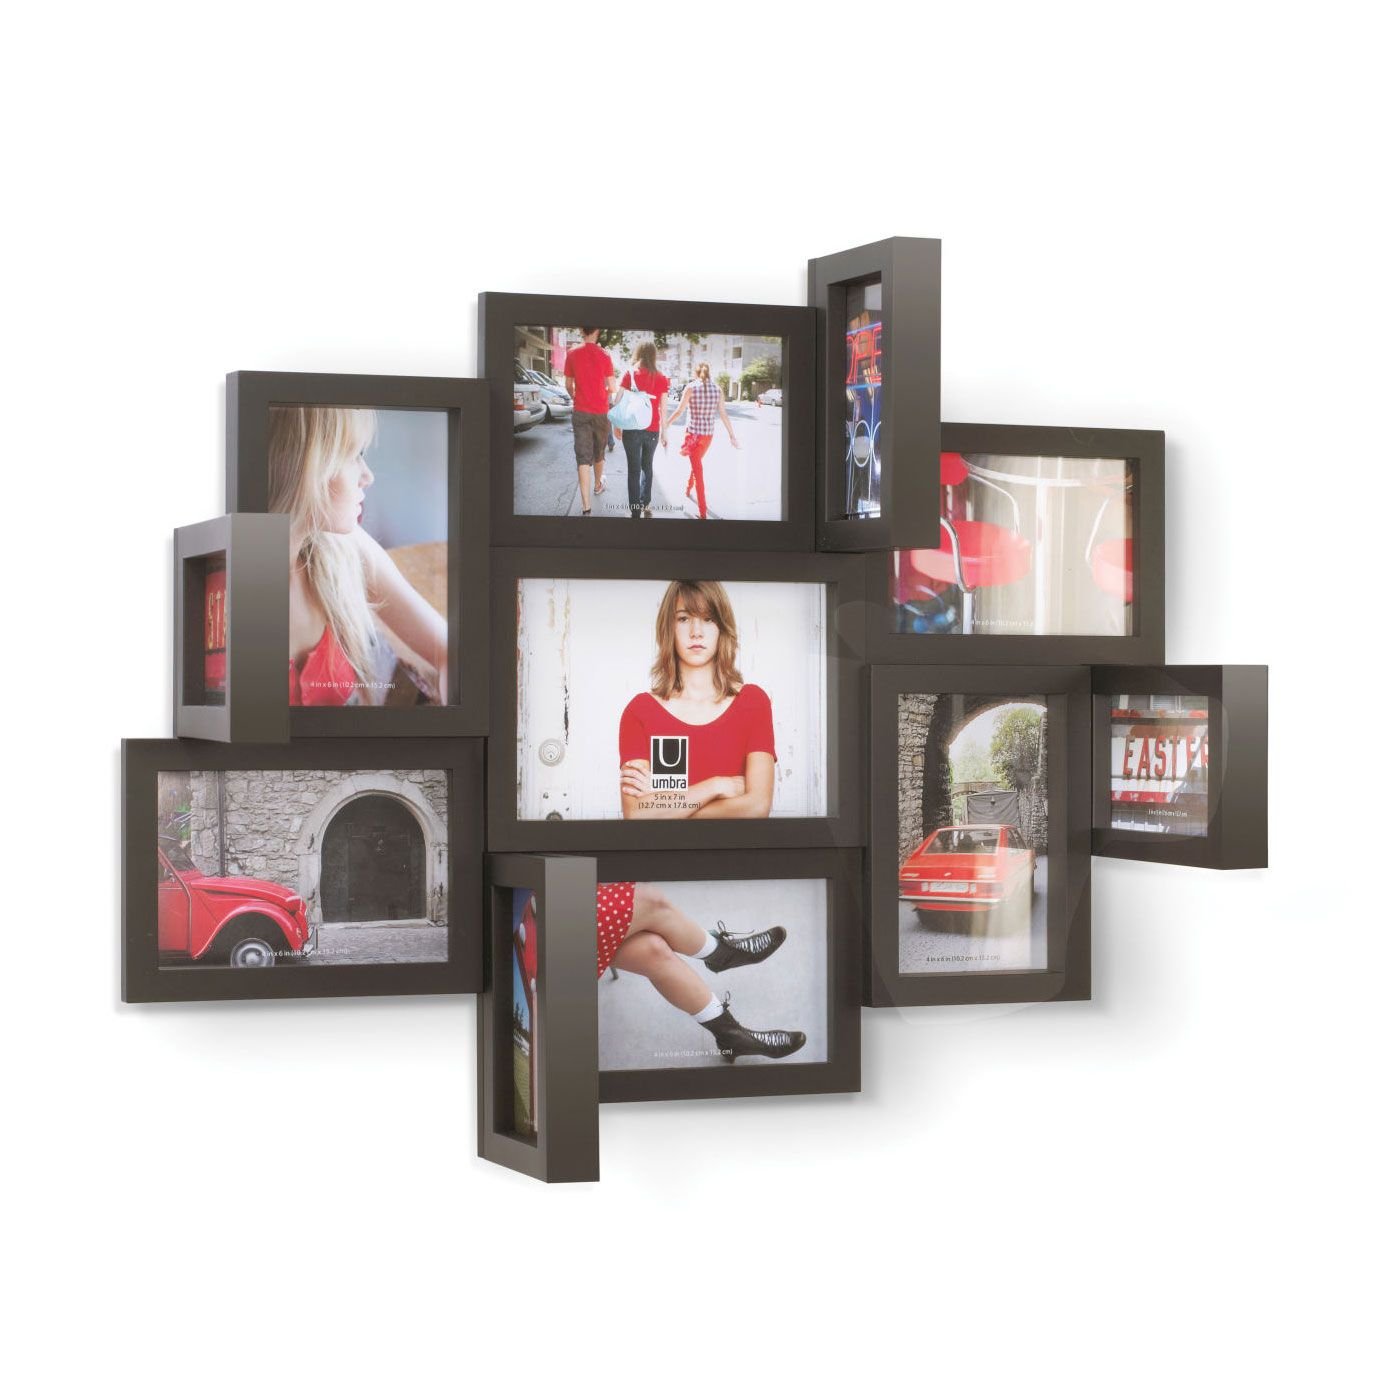 Photos literally pop out at you with this 3D Contemporary Photo Multiframe. The molded wall multiframe lets you display three different photo sizes, and four double-sided 3D vertical frames jut out from the rest for a striking effect.